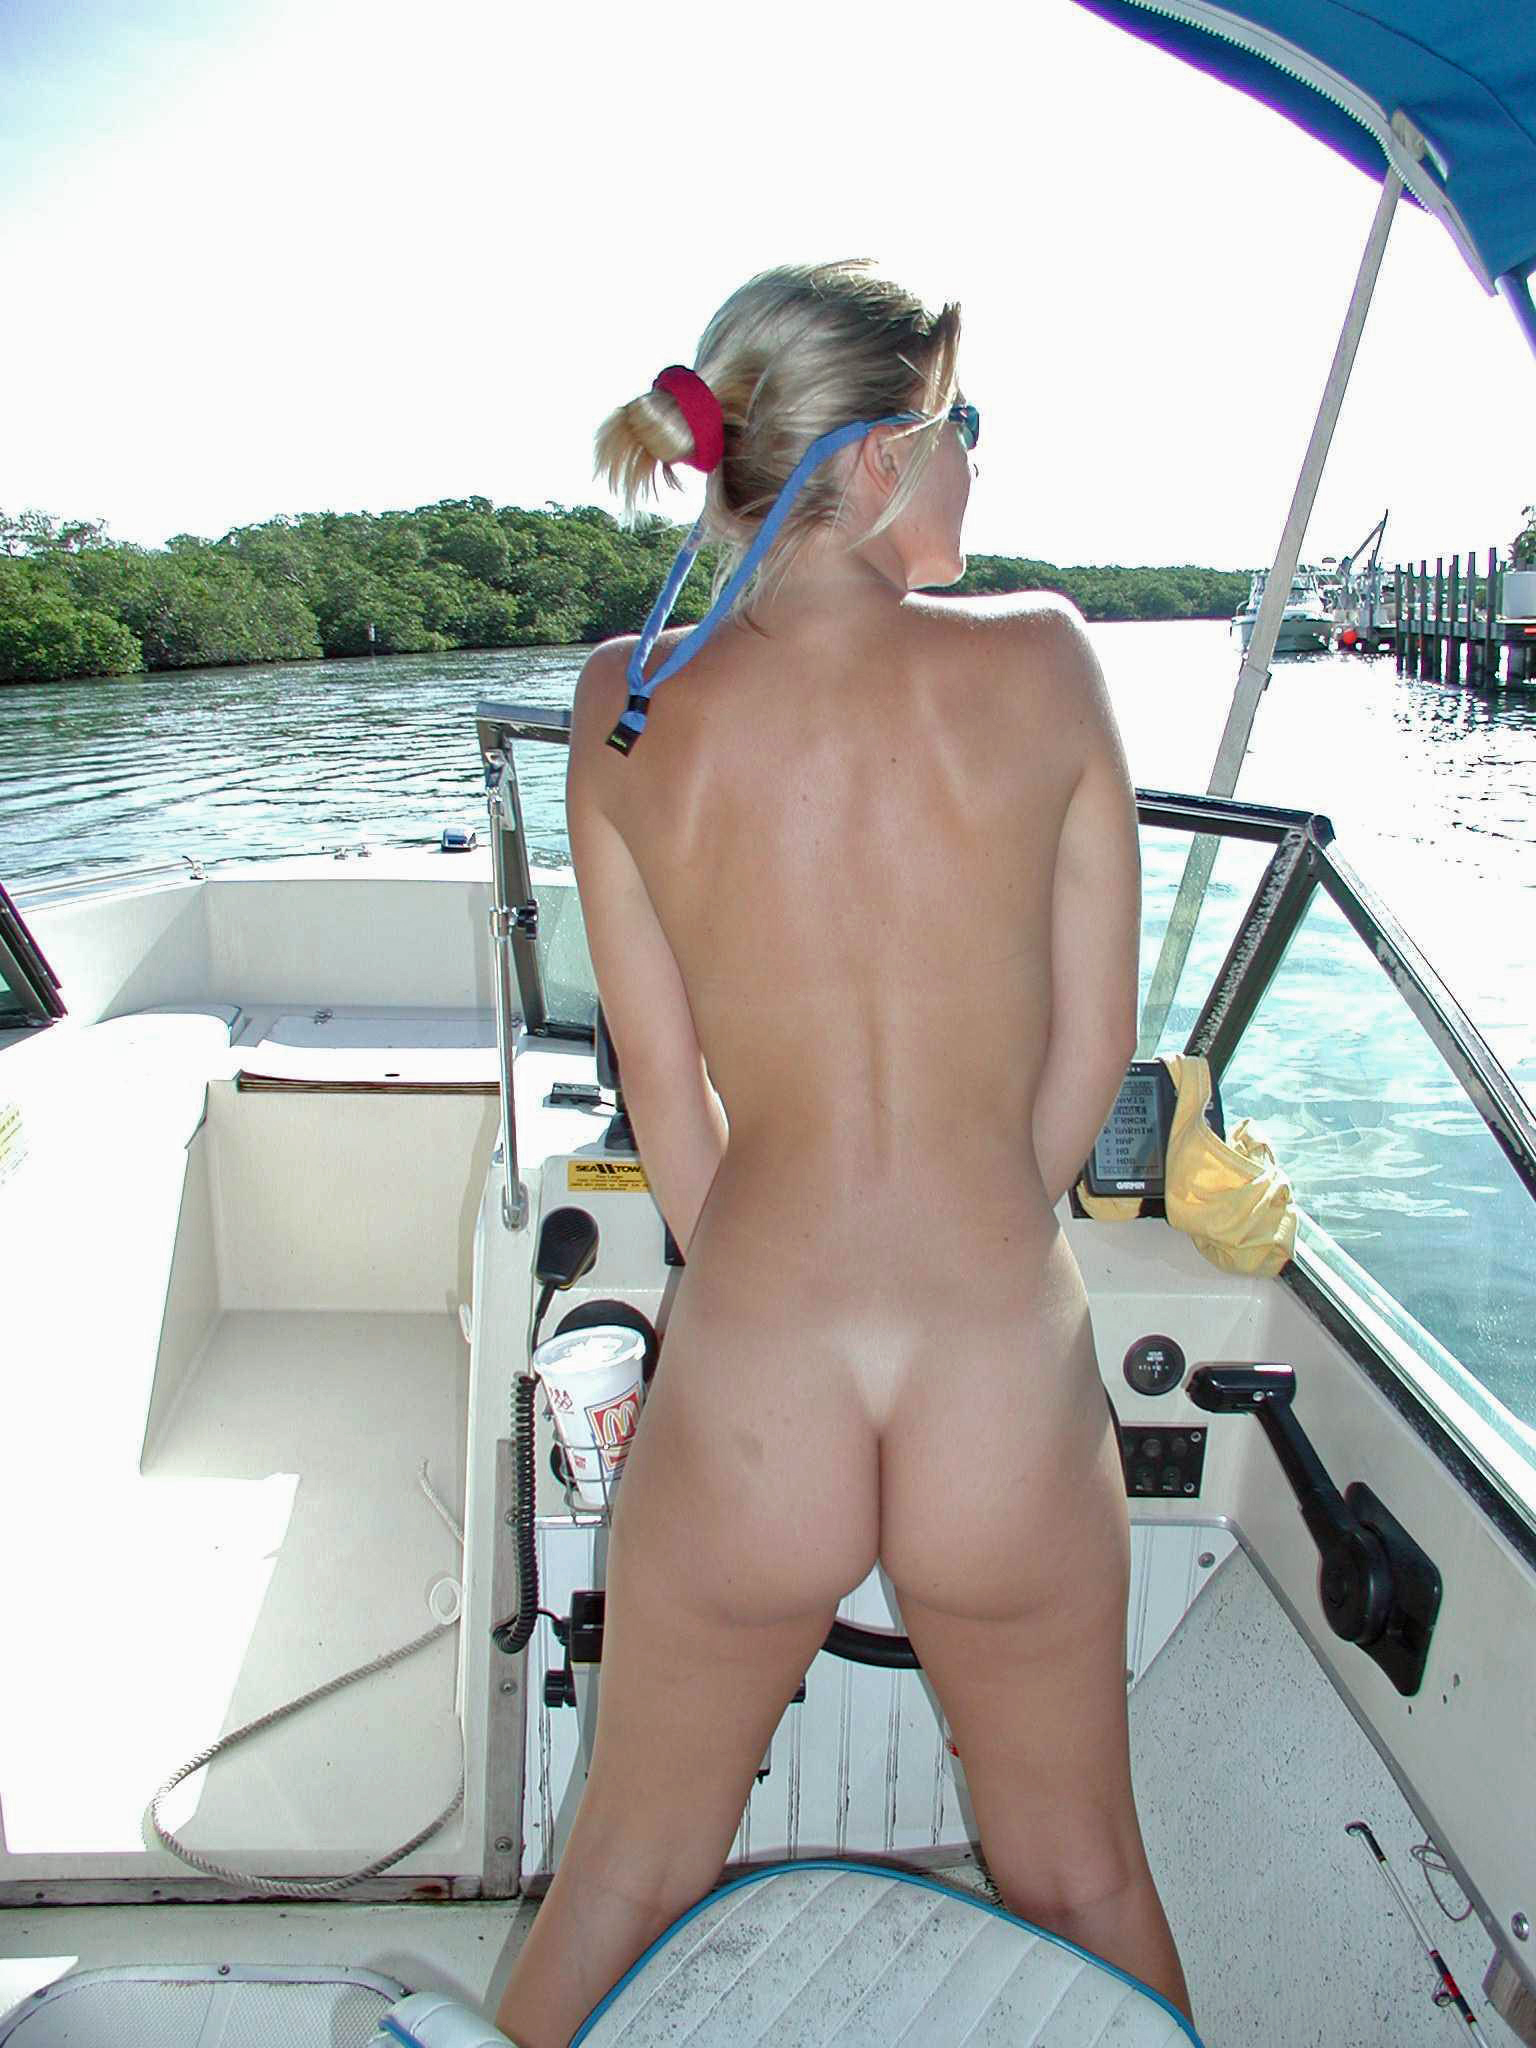 Necessary Nude girls on boats lake havasu consider